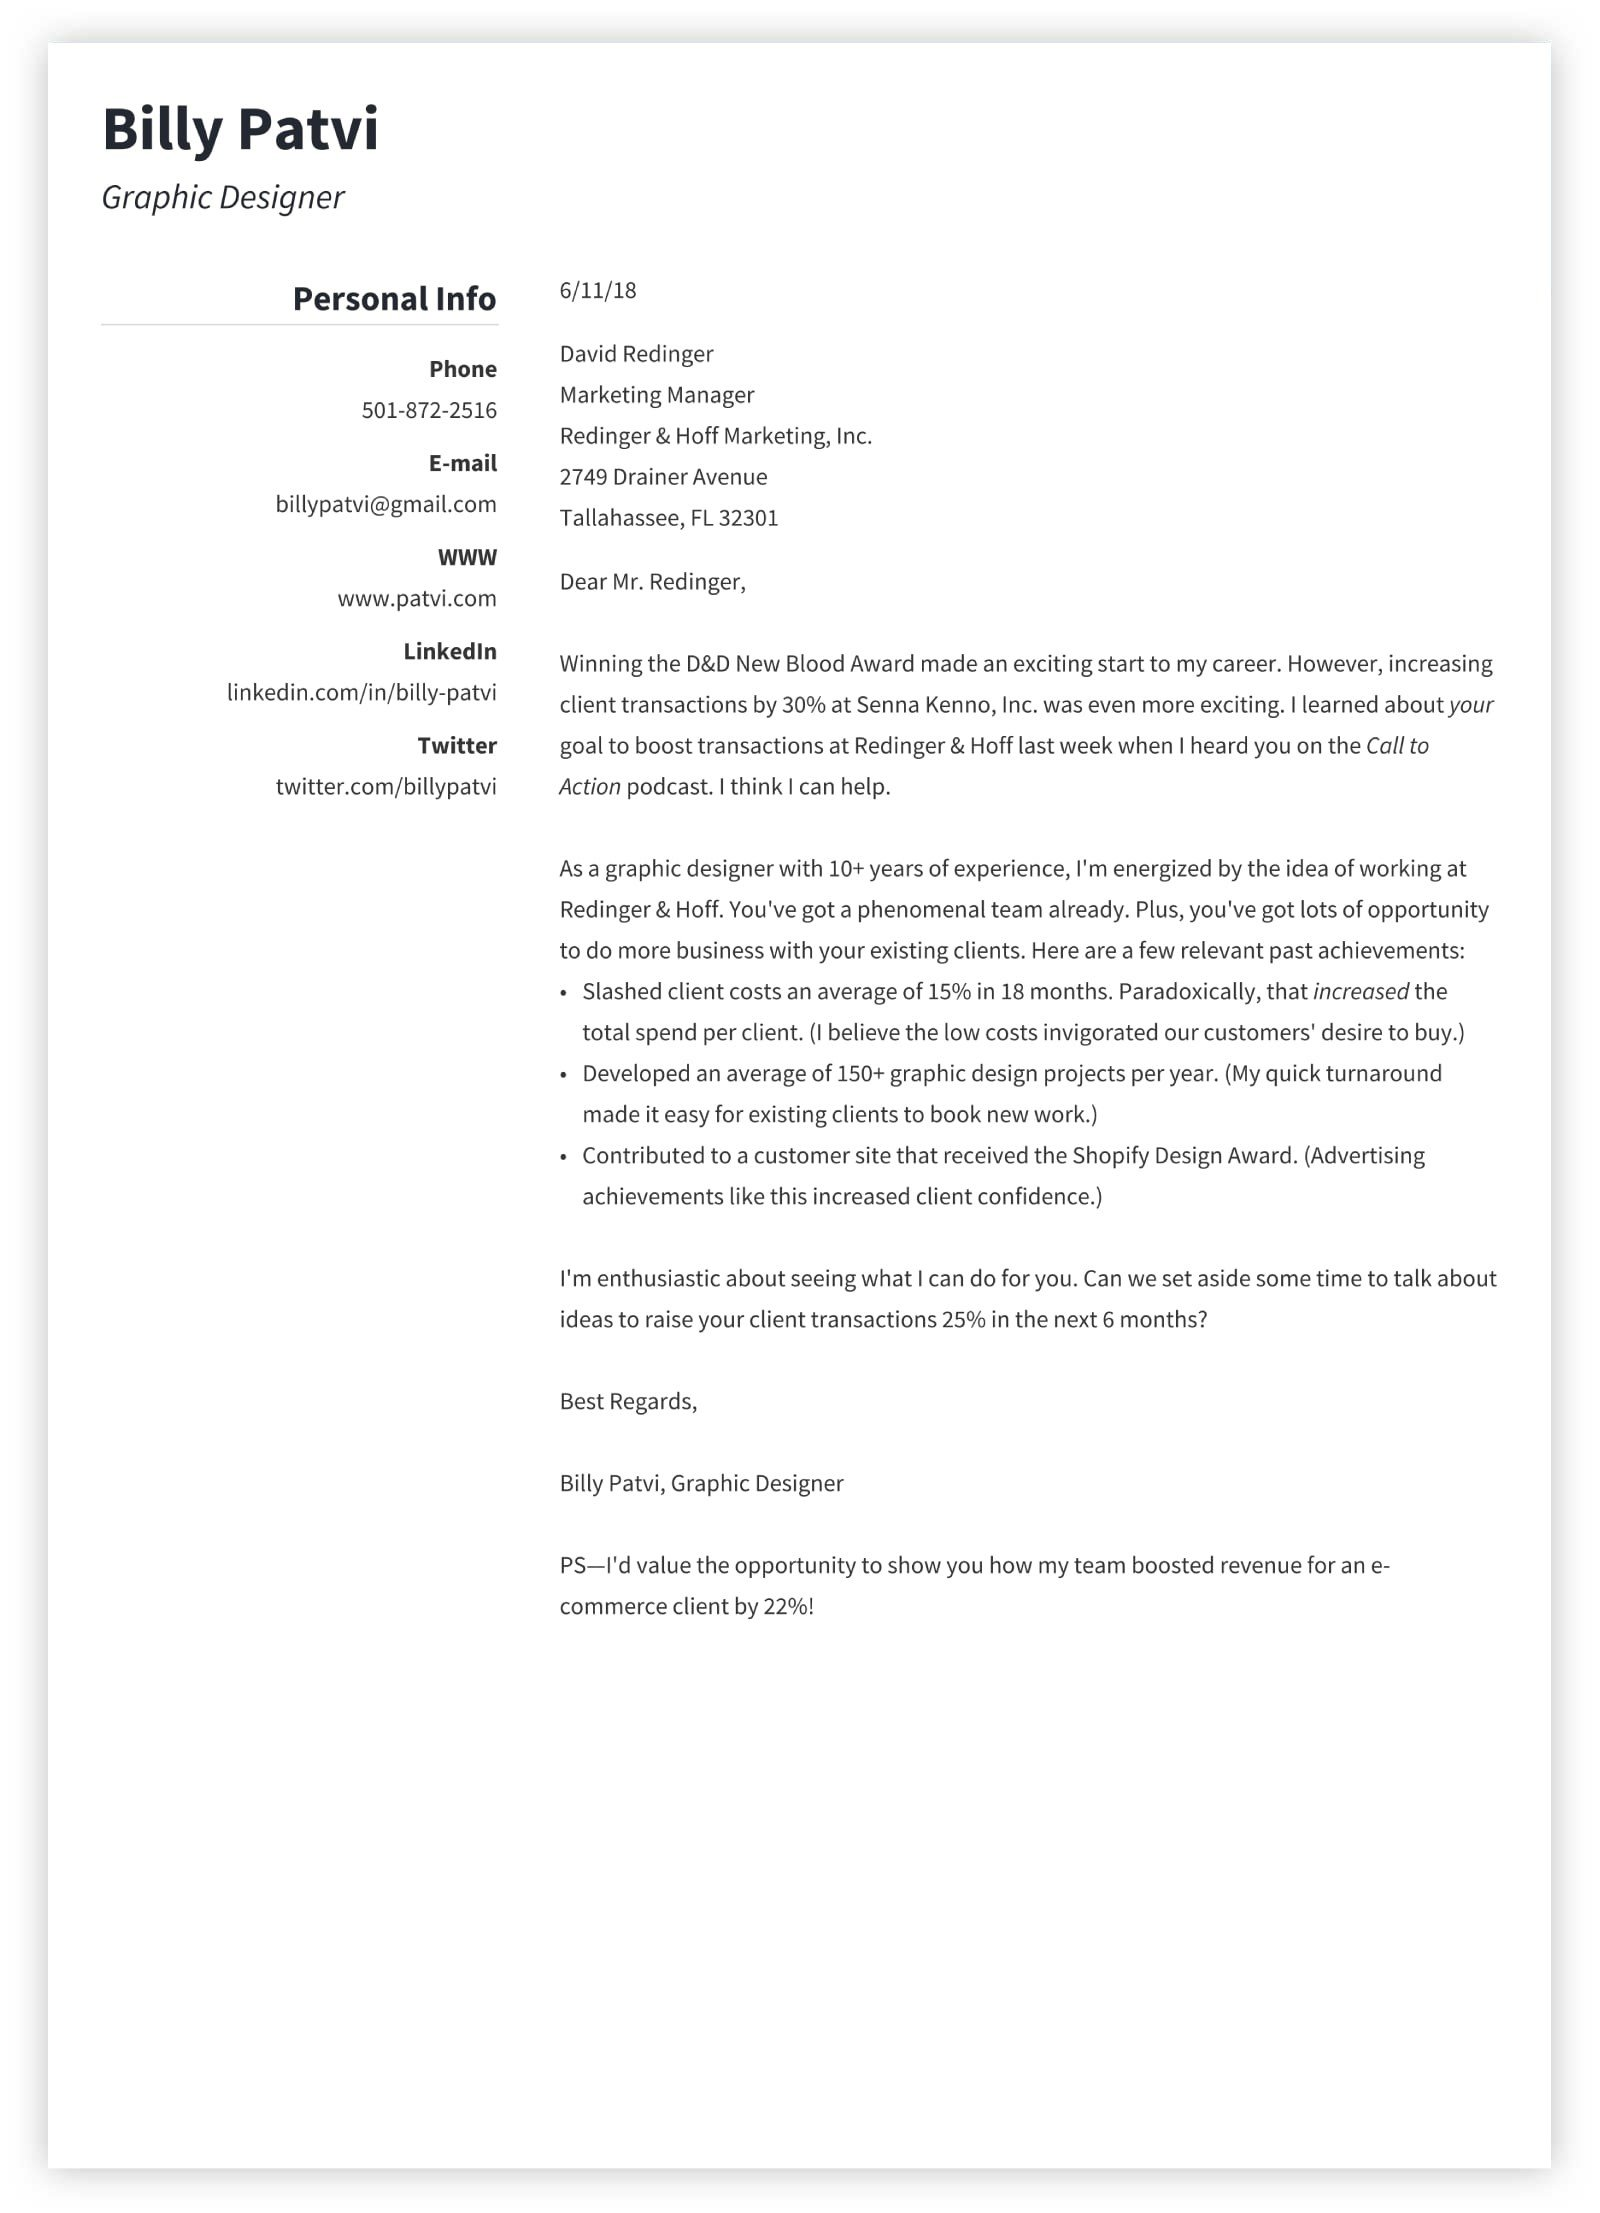 How to Write a Cover Letter/Application Letter: 12 Examples for All Jobs